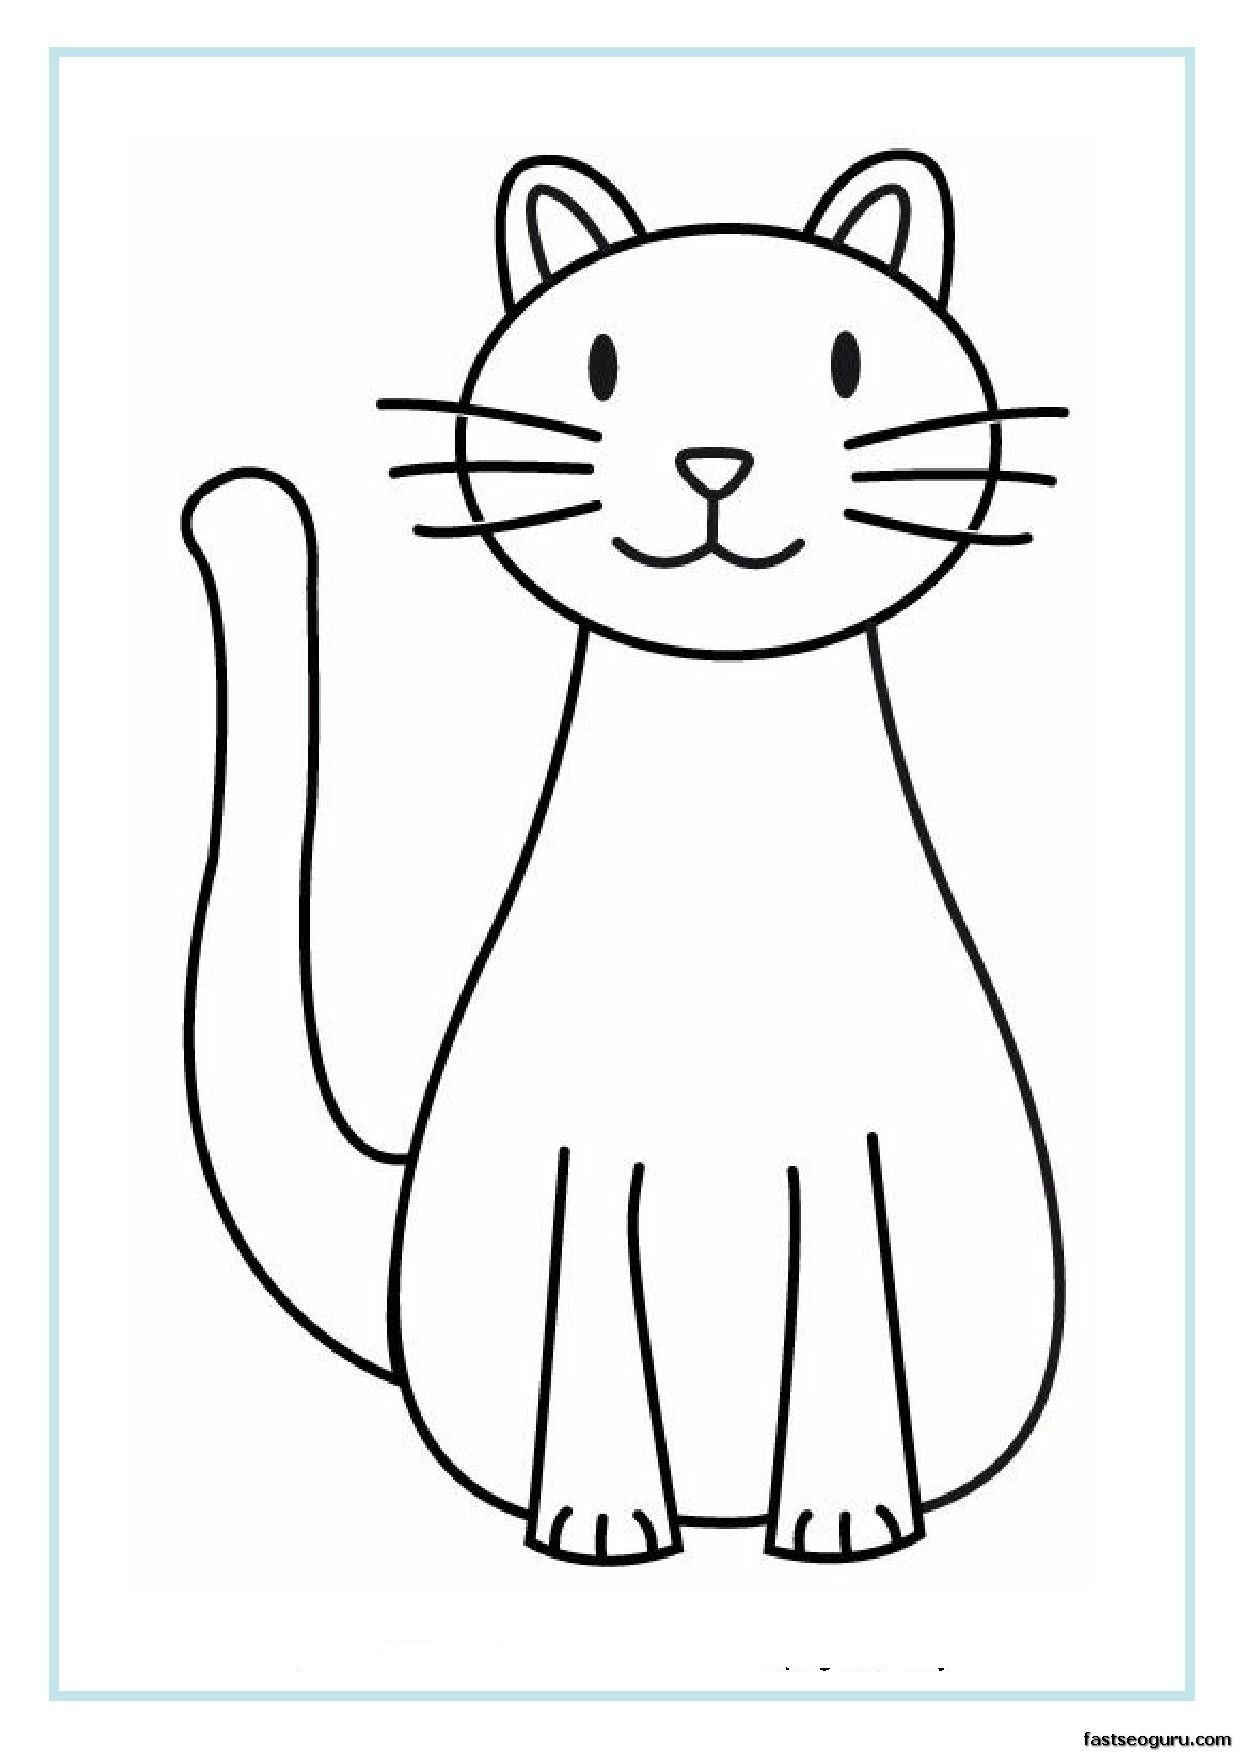 Printable Cat coloring pages for